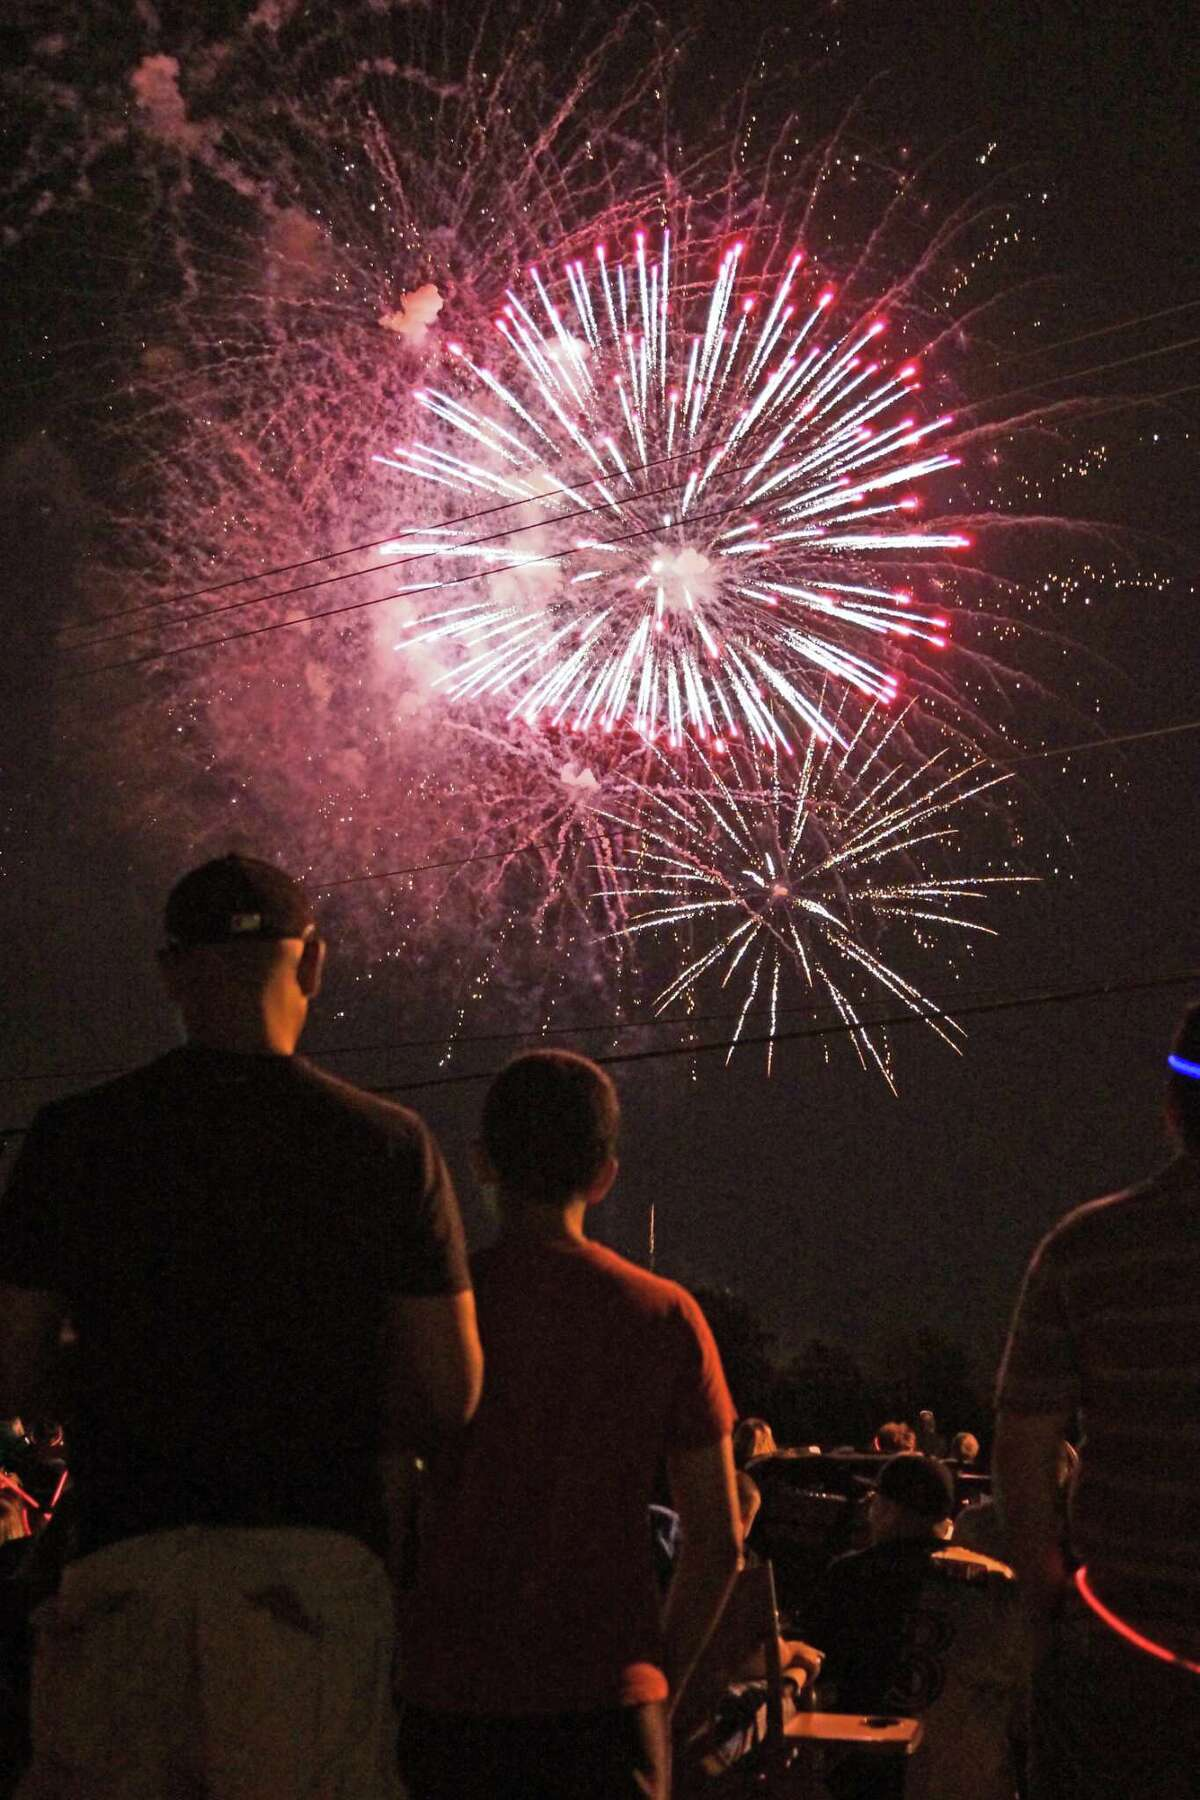 July 4 fireworks celebration in Tomball